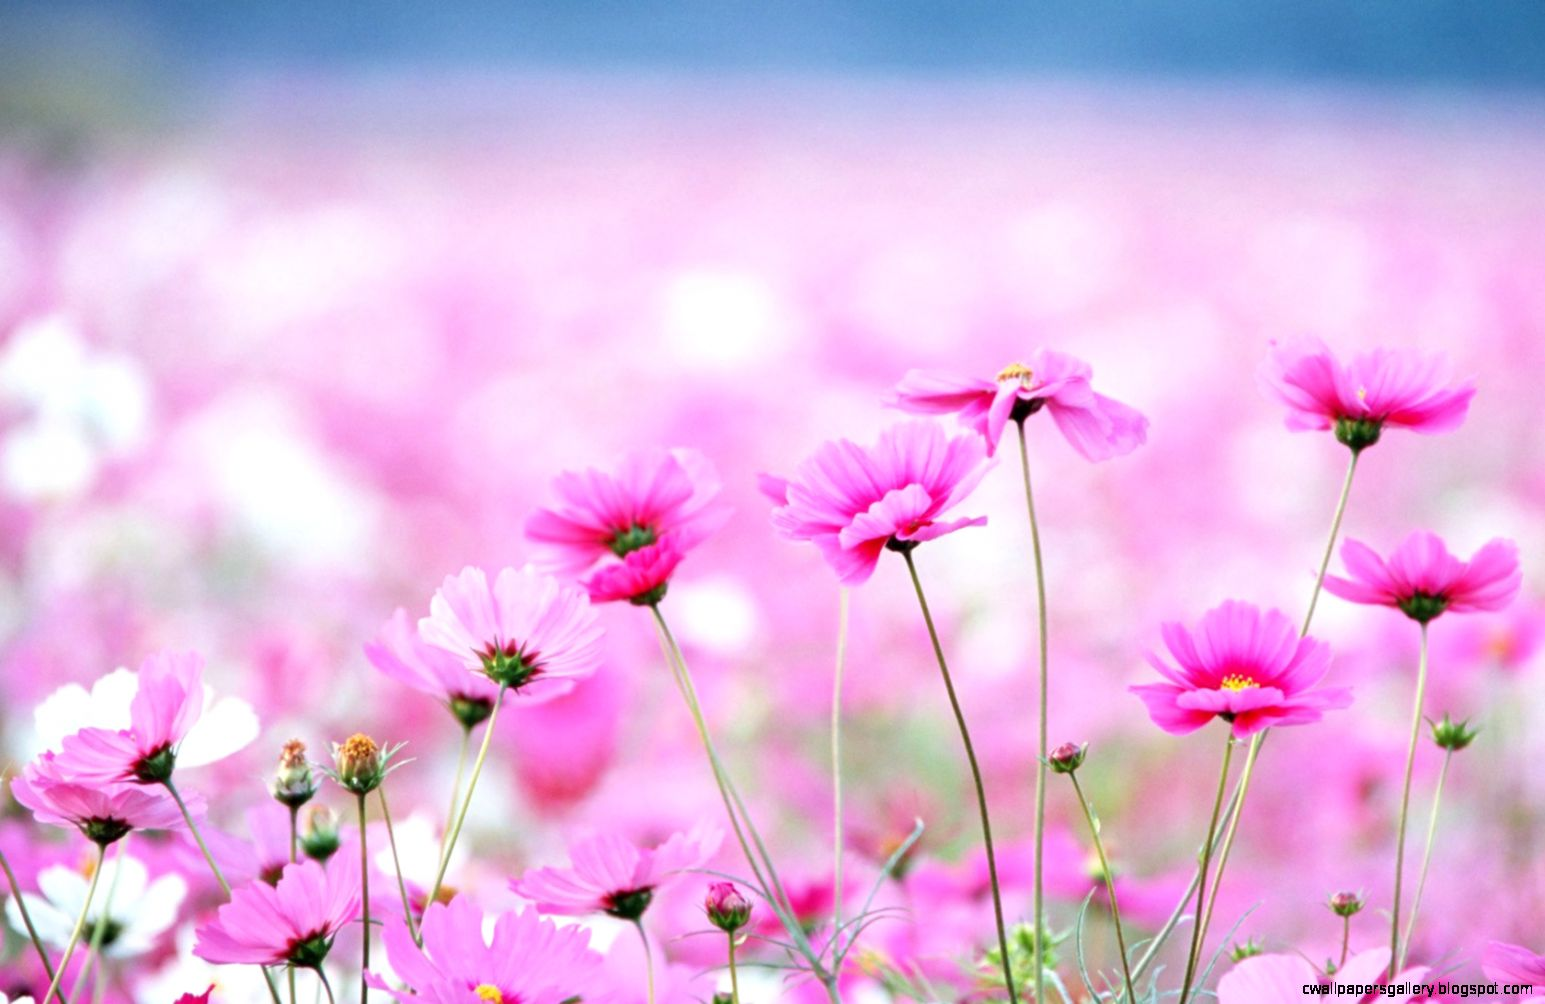 40 BEAUTIFUL FLOWER WALLPAPERS FREE TO    Godfather Style